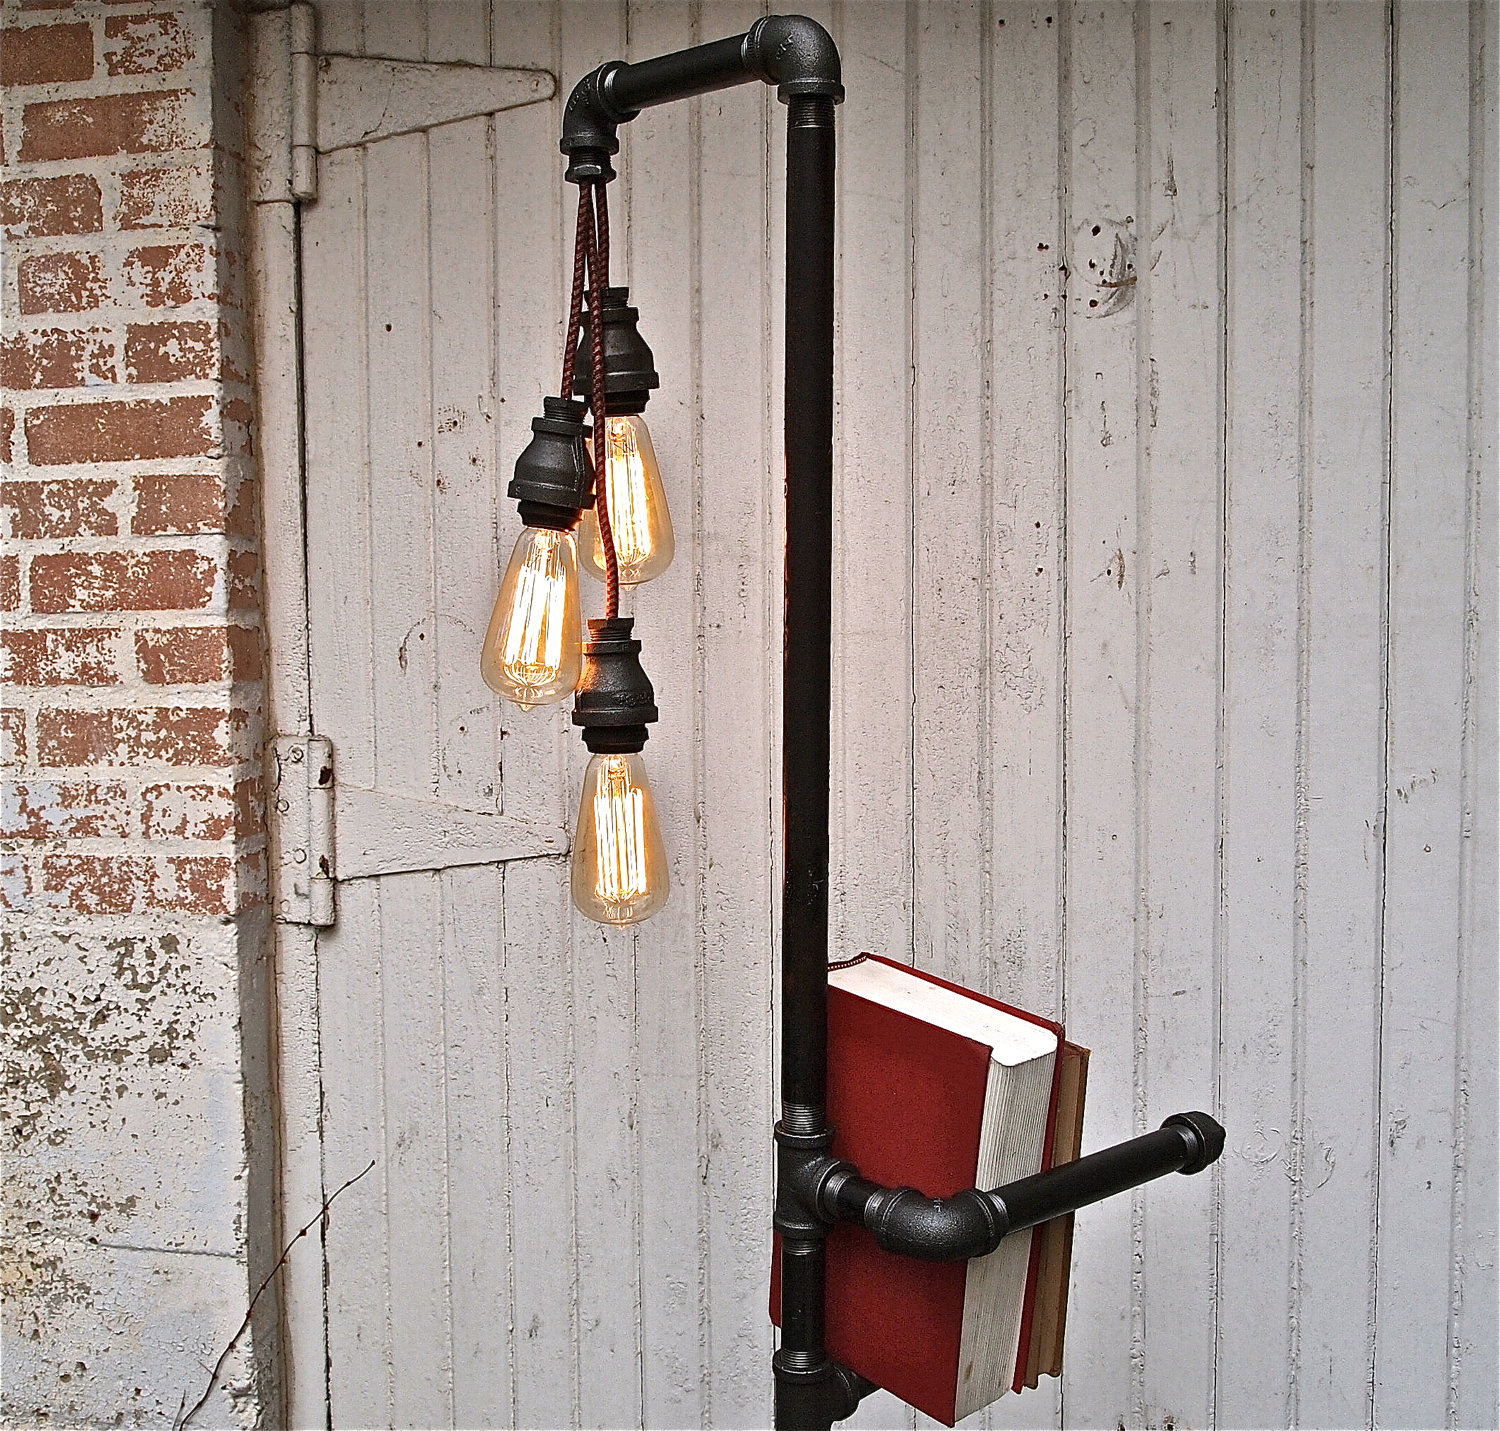 Black Industrial Floor Lamp The Collectionaire Pipe Dreams With Stella Bleu Designs